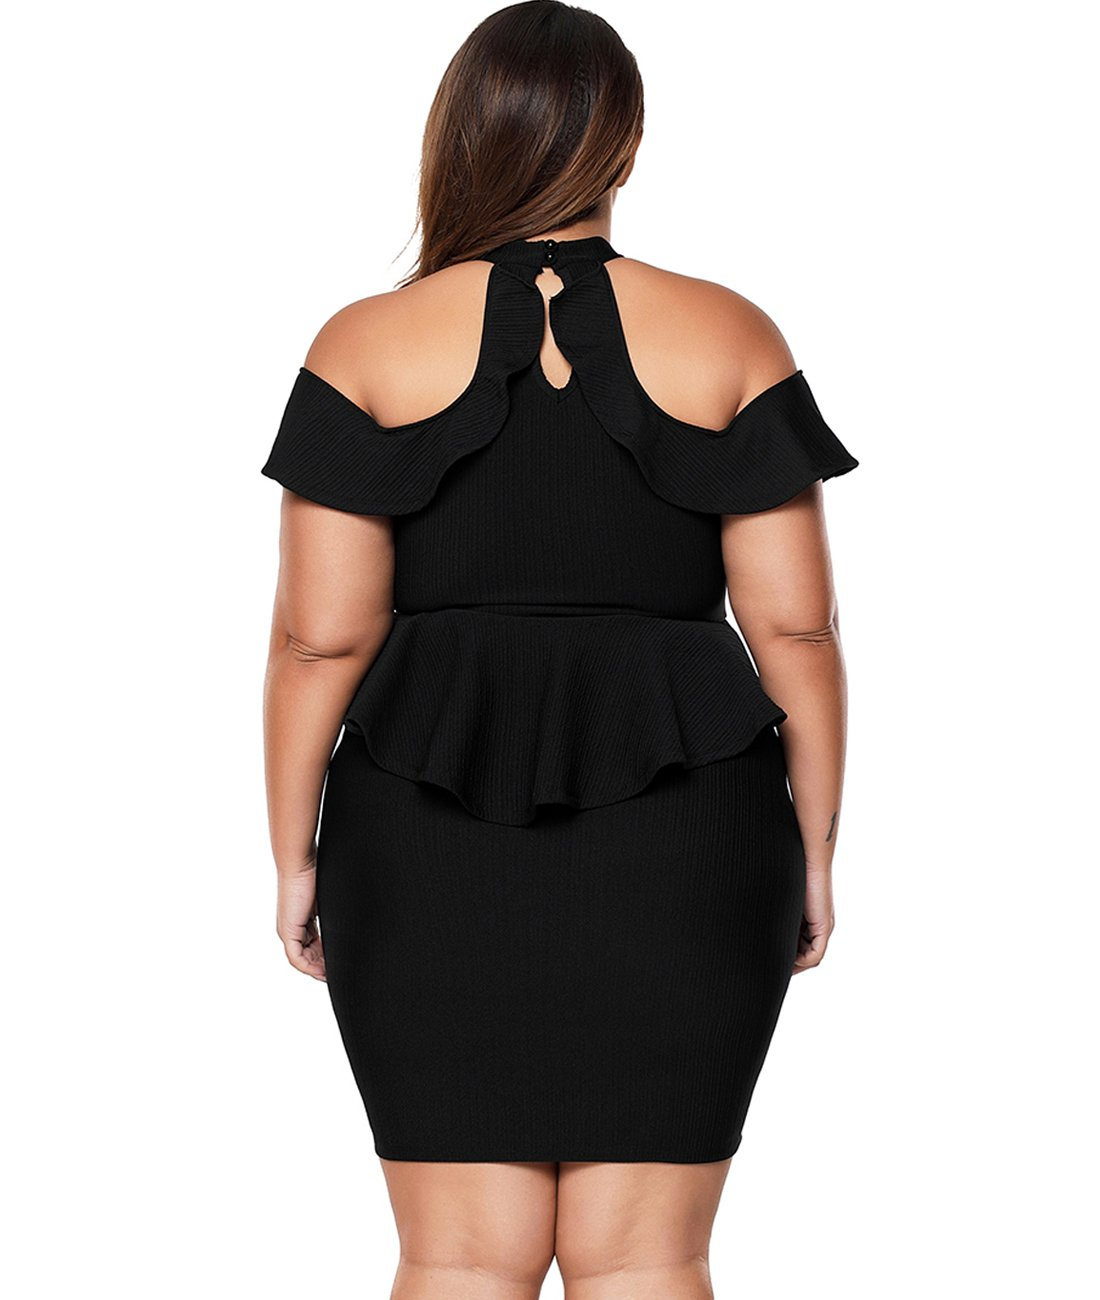 Lalagen Women\'s Plus Size Cold Shoulder Peplum Dress Bodycon Party Dress  Black XXL